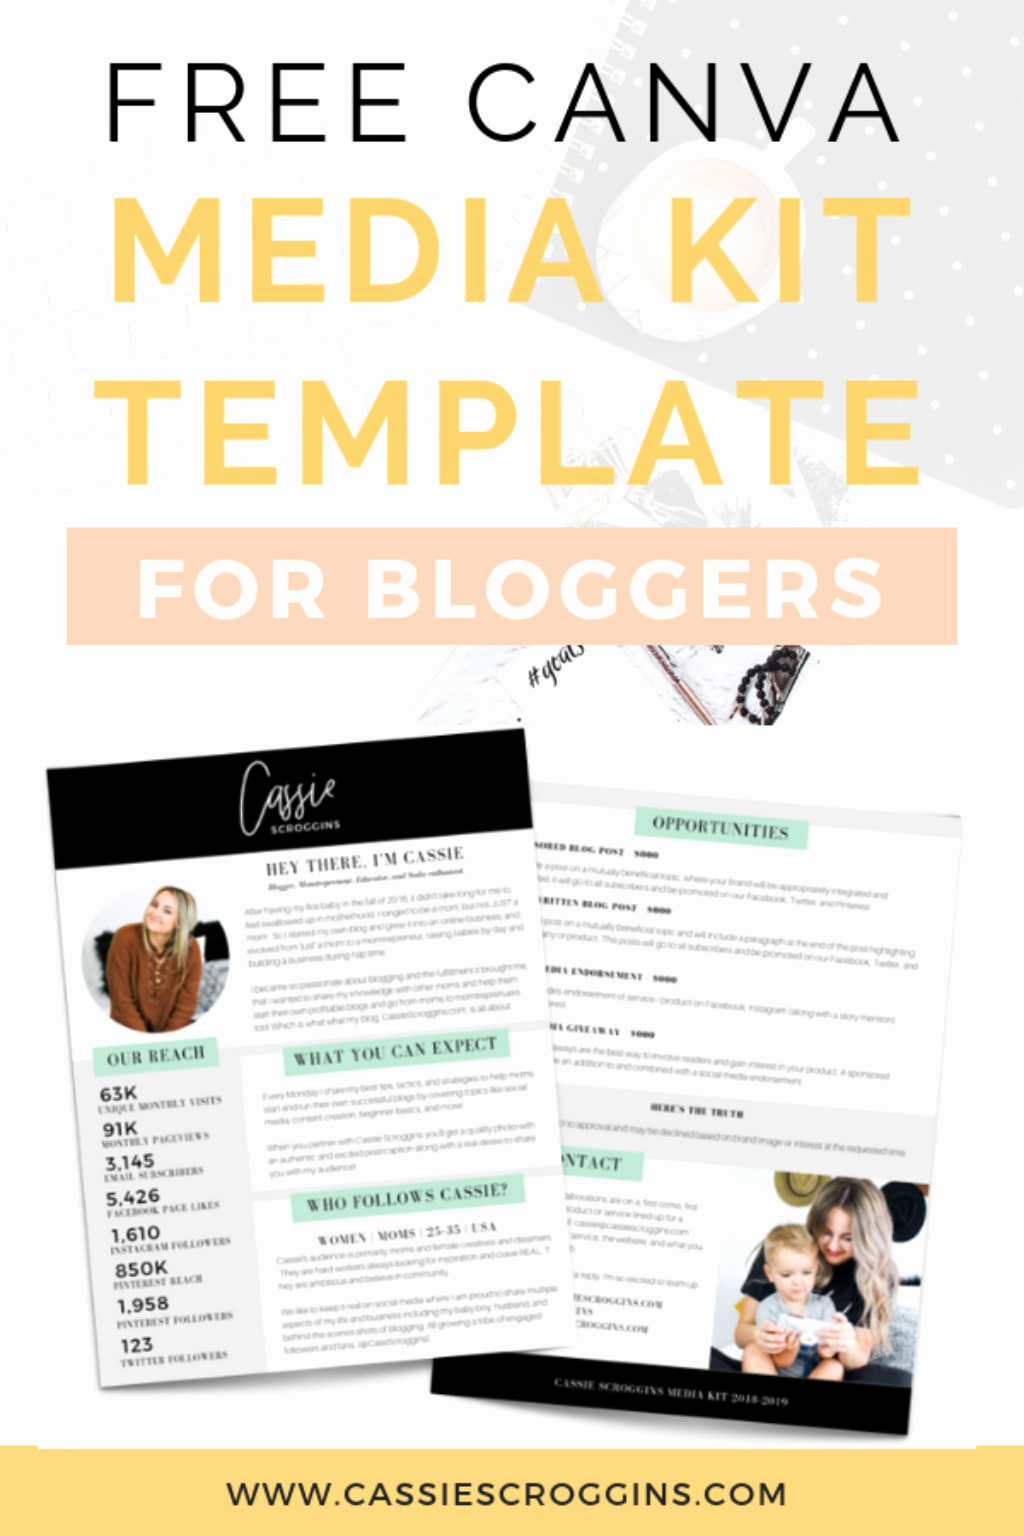 Blogger Media Kit Template Beautiful Free Canva Media Kit Template for Bloggers Cassie Scroggins